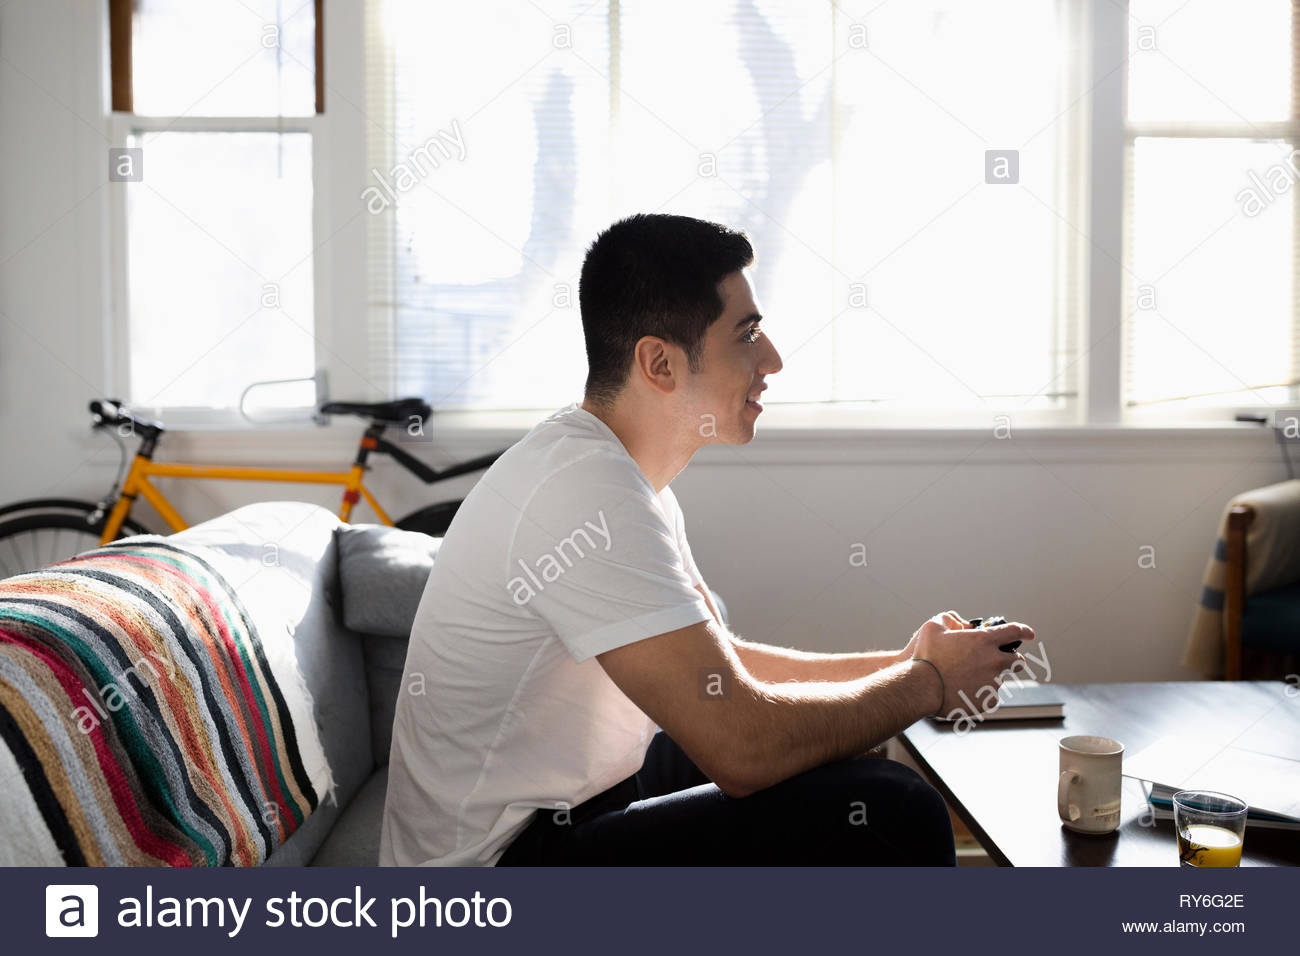 Young Latinx man playing video game in living room - Stock Image